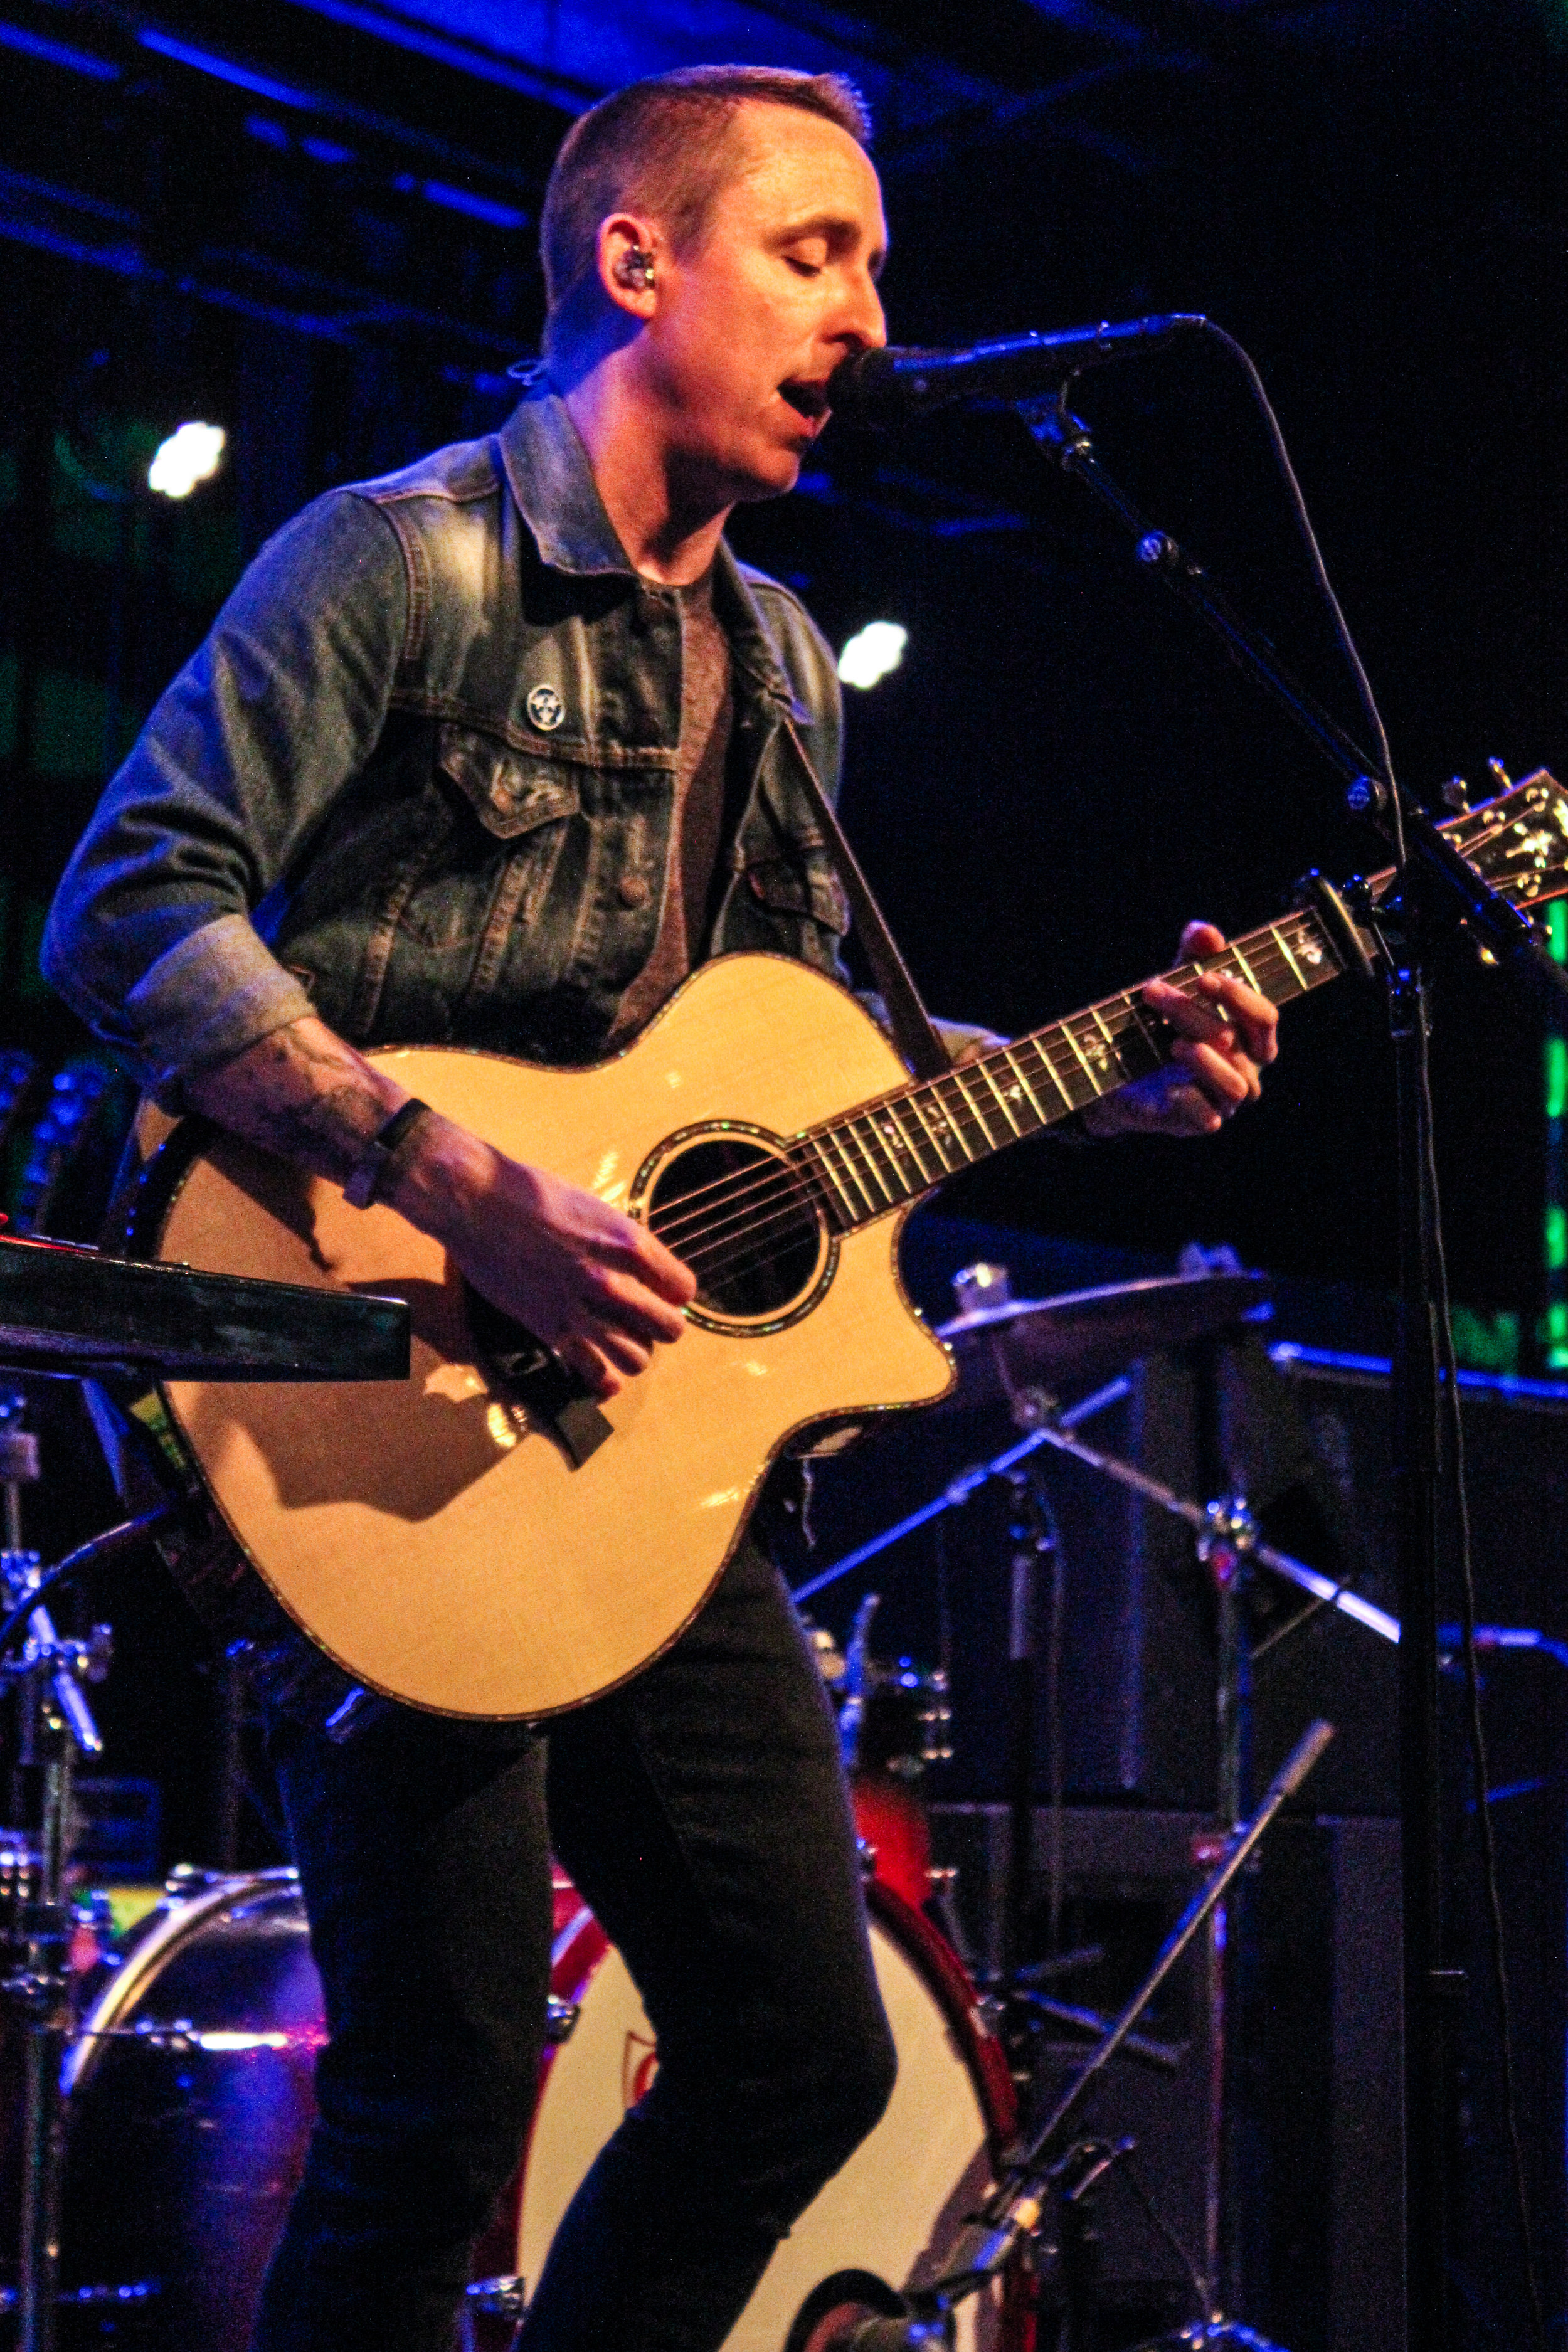 05 William Ryan Key of Yellowcard (7).jpg